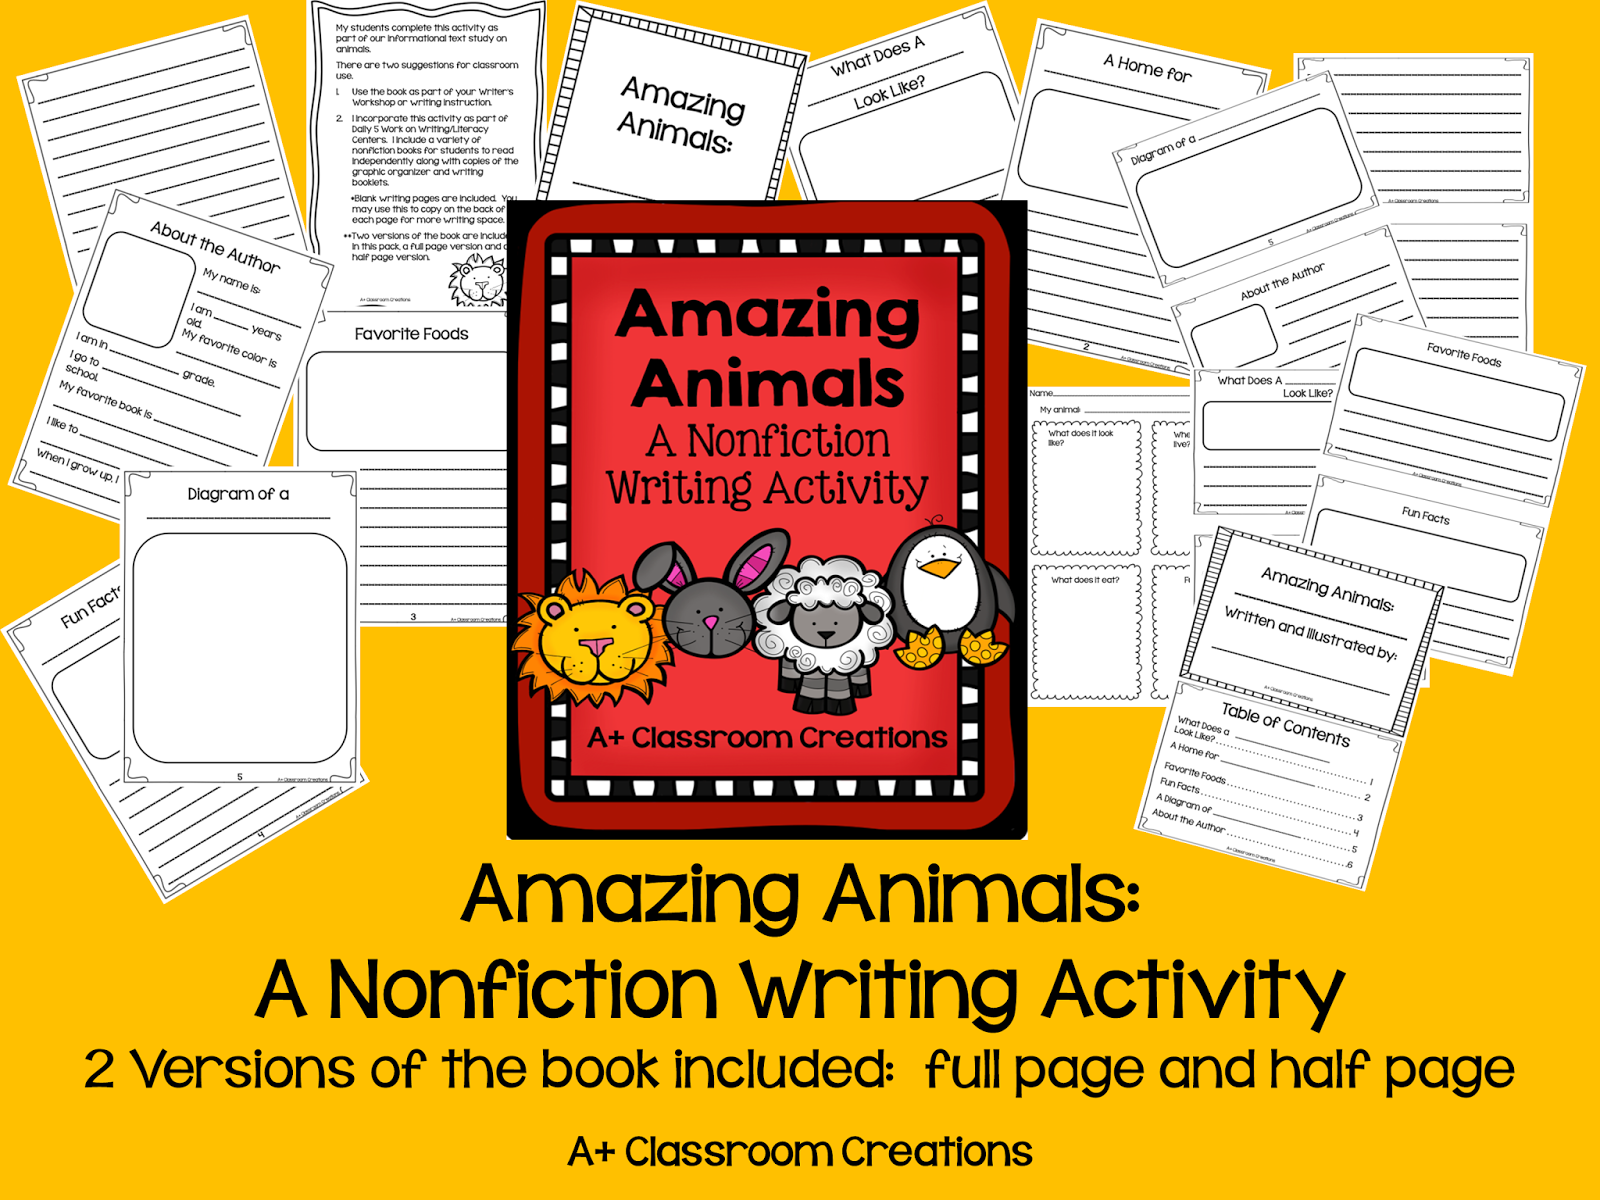 http://www.teacherspayteachers.com/Product/Amazing-Aminals-A-Non-Fiction-Writing-Activity-1181415